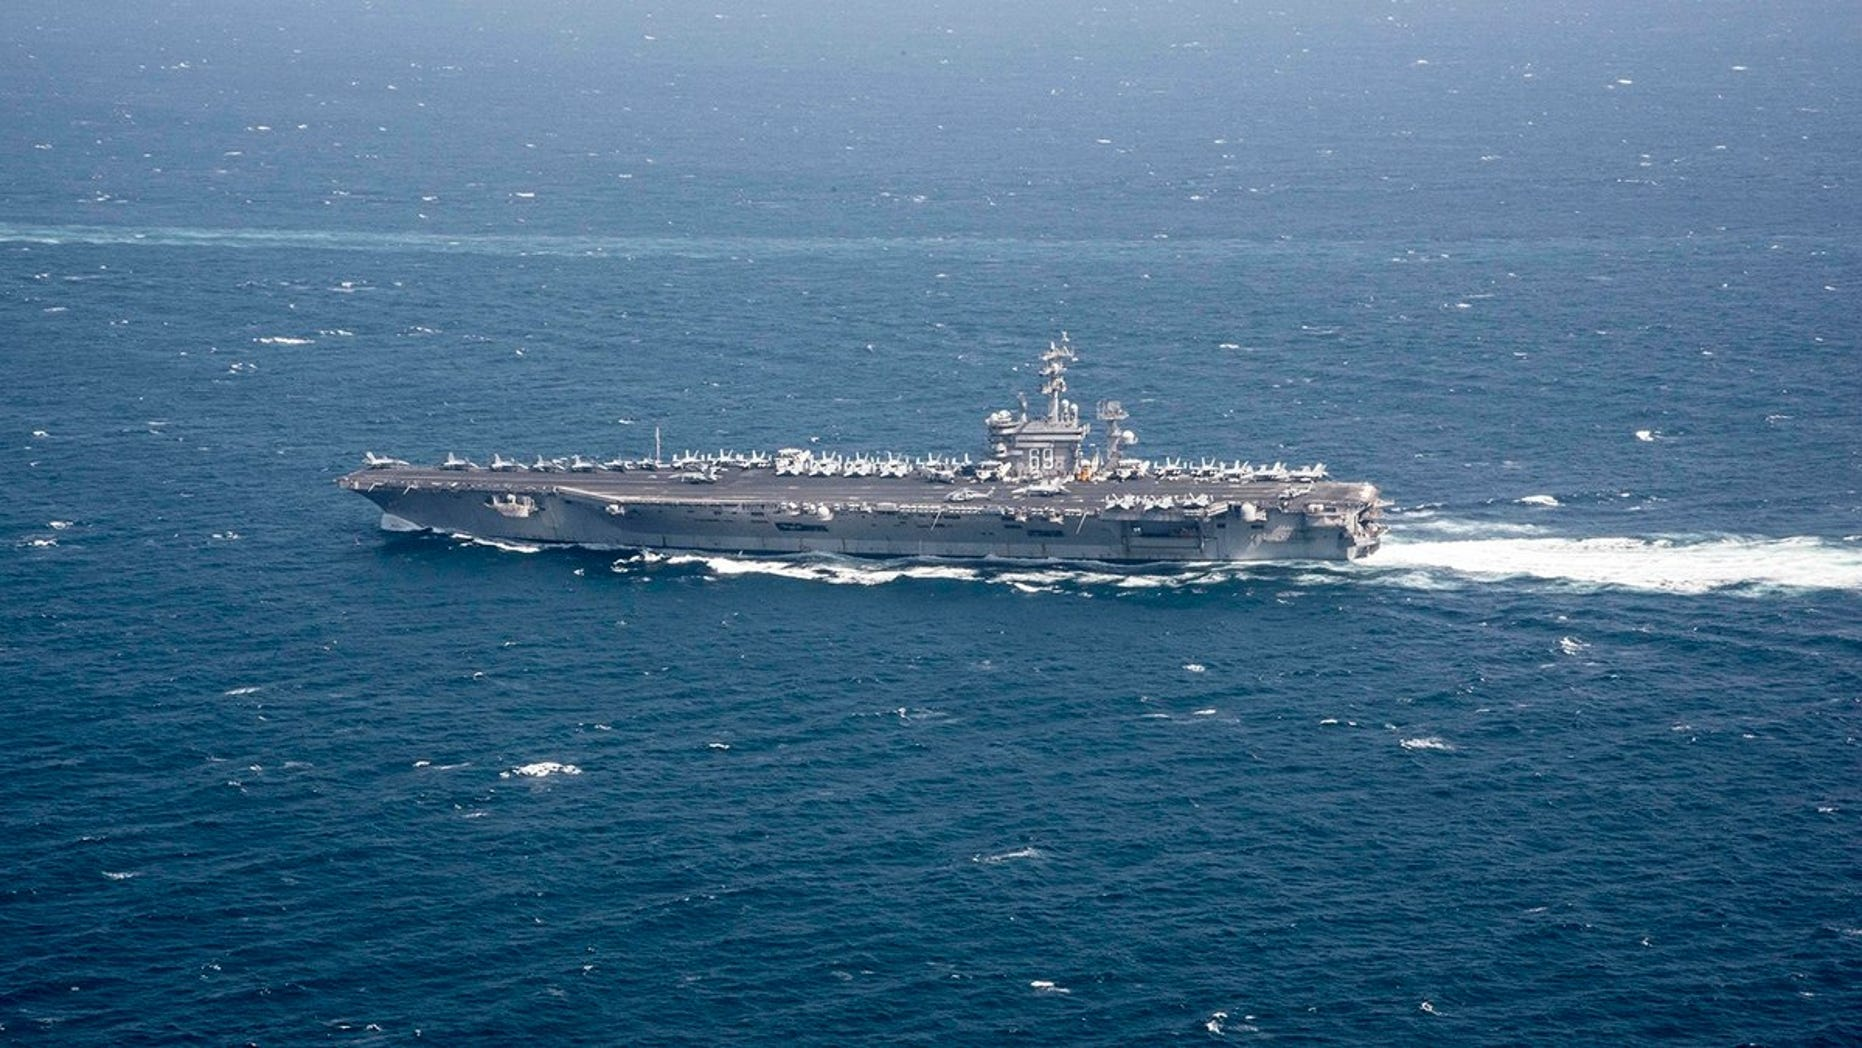 Westlake Legal Group 7MDWEOY7CFEAJHY3IEIKJ65K54 SEE IT: Iranian drone purportedly monitored US carrier Eisenhower in Persian Gulf fox-news/world/conflicts/iran fox-news/us/military/navy fox news fnc/world fnc b3f367b2-4ca4-5646-8b44-04abfc75a11a article